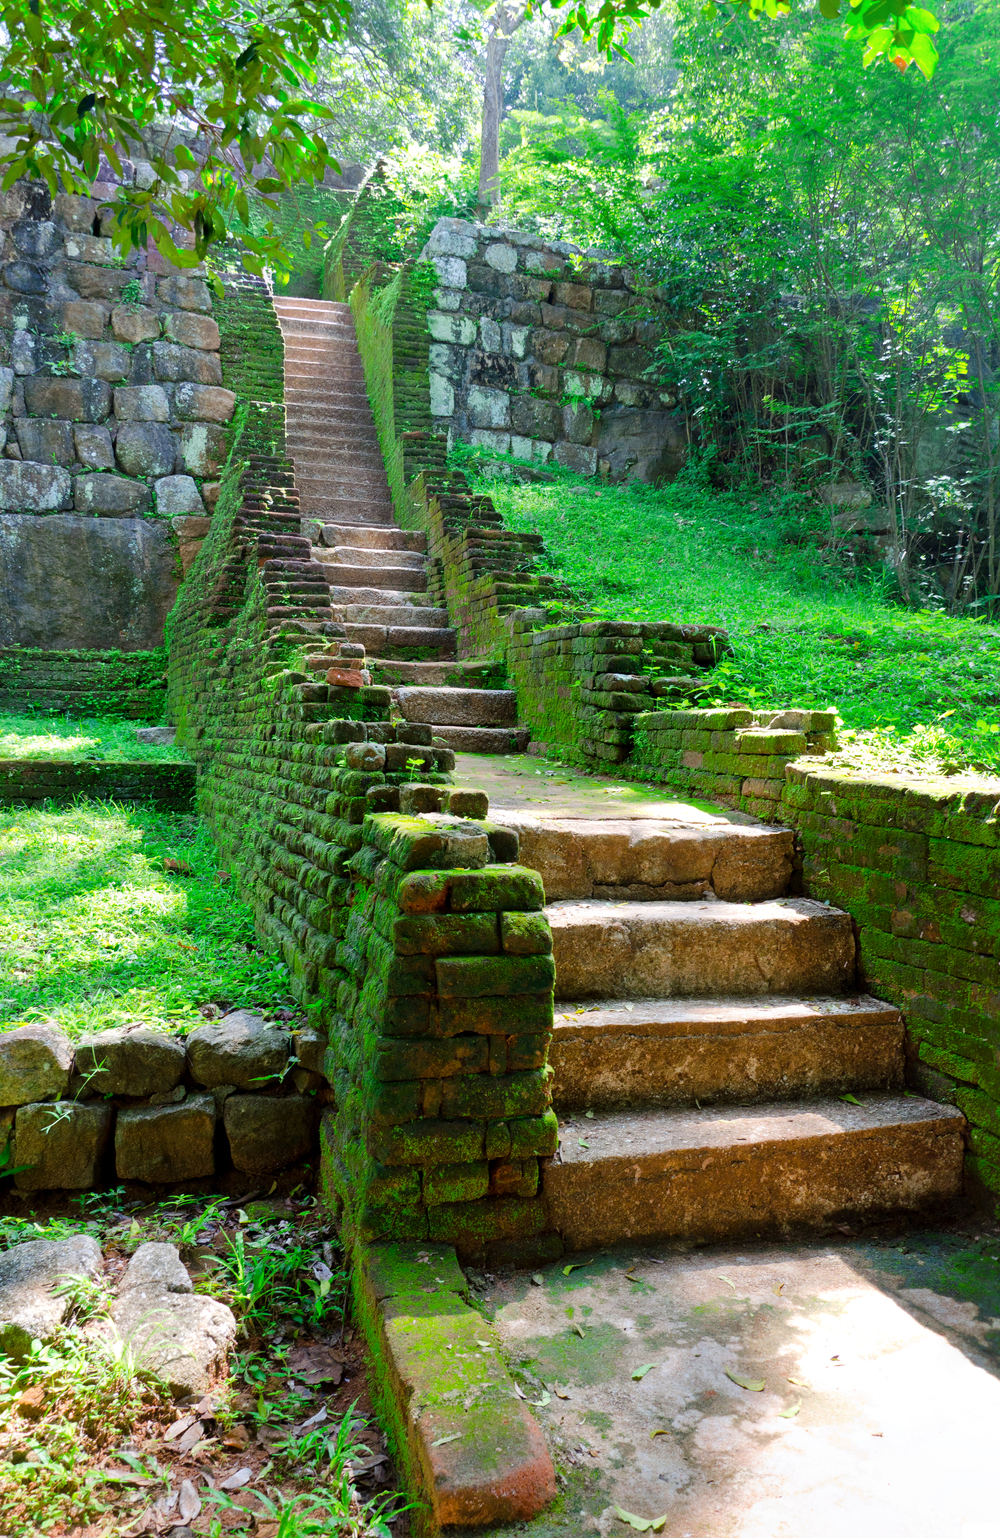 invite-to-paradise-sri-lanka-holiday-honeymoon-sigiriya-rock-fortress-stairs.jpg